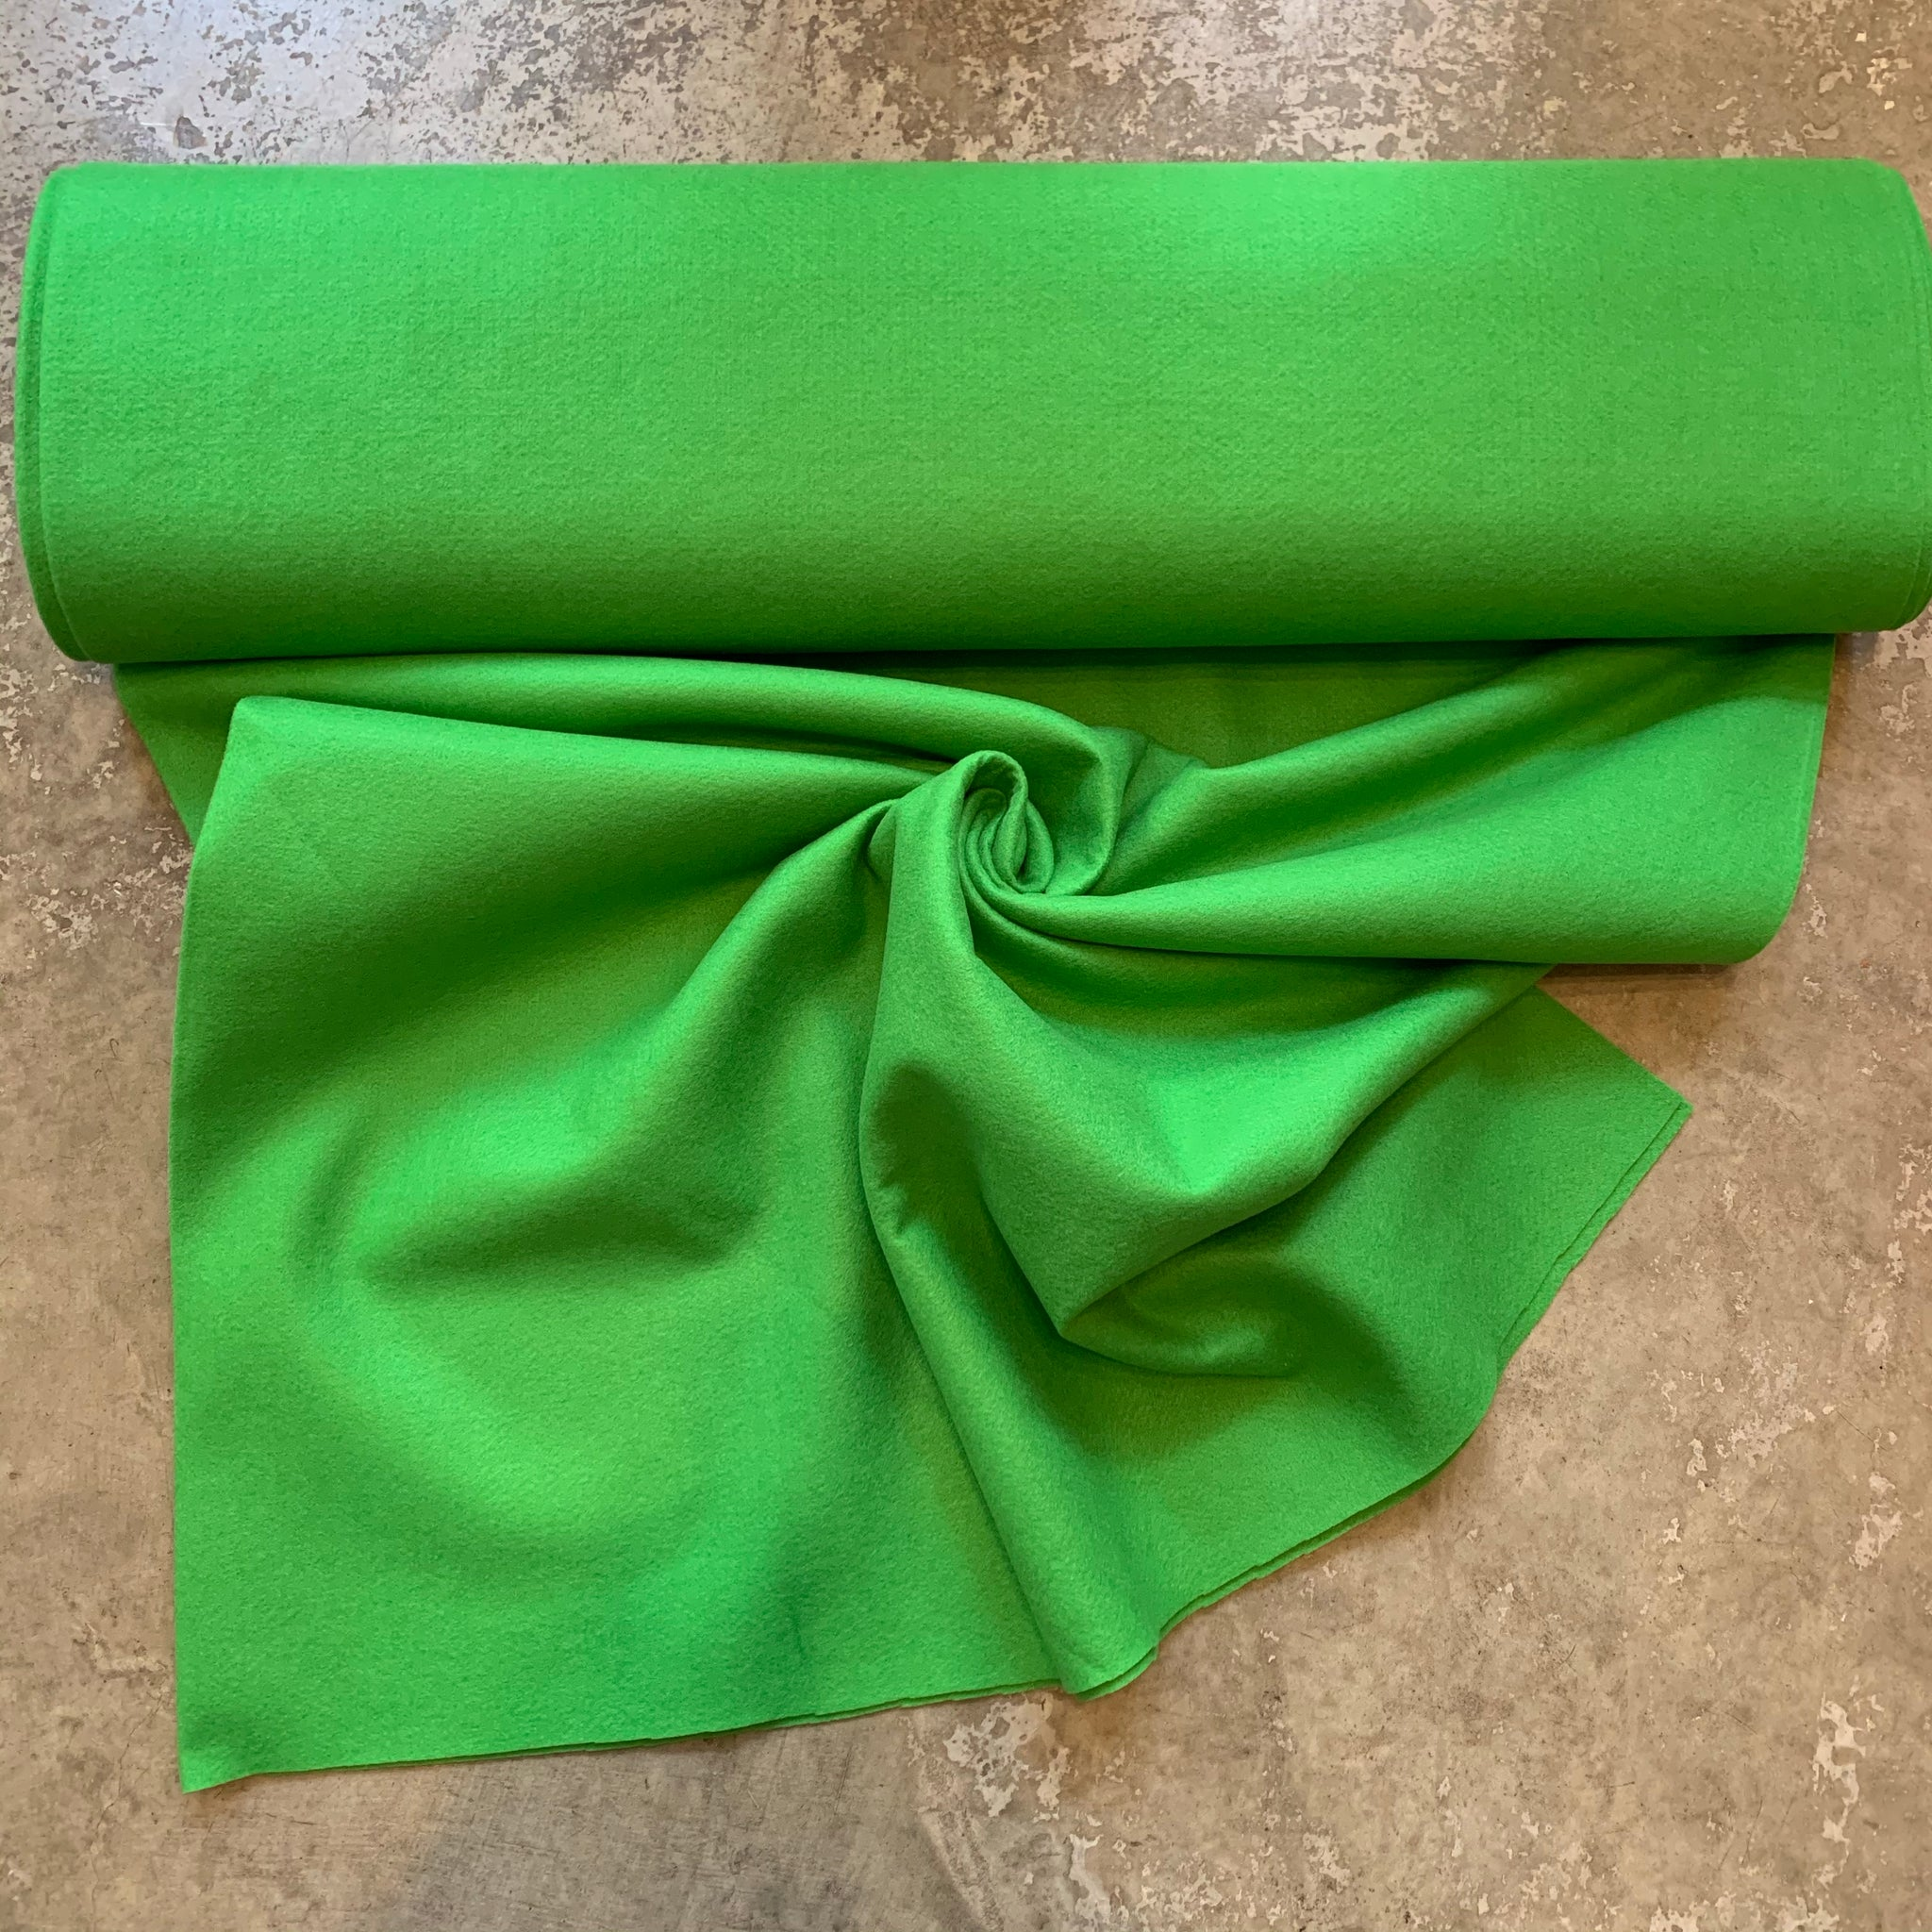 Fiesta Felt - Pirate Green